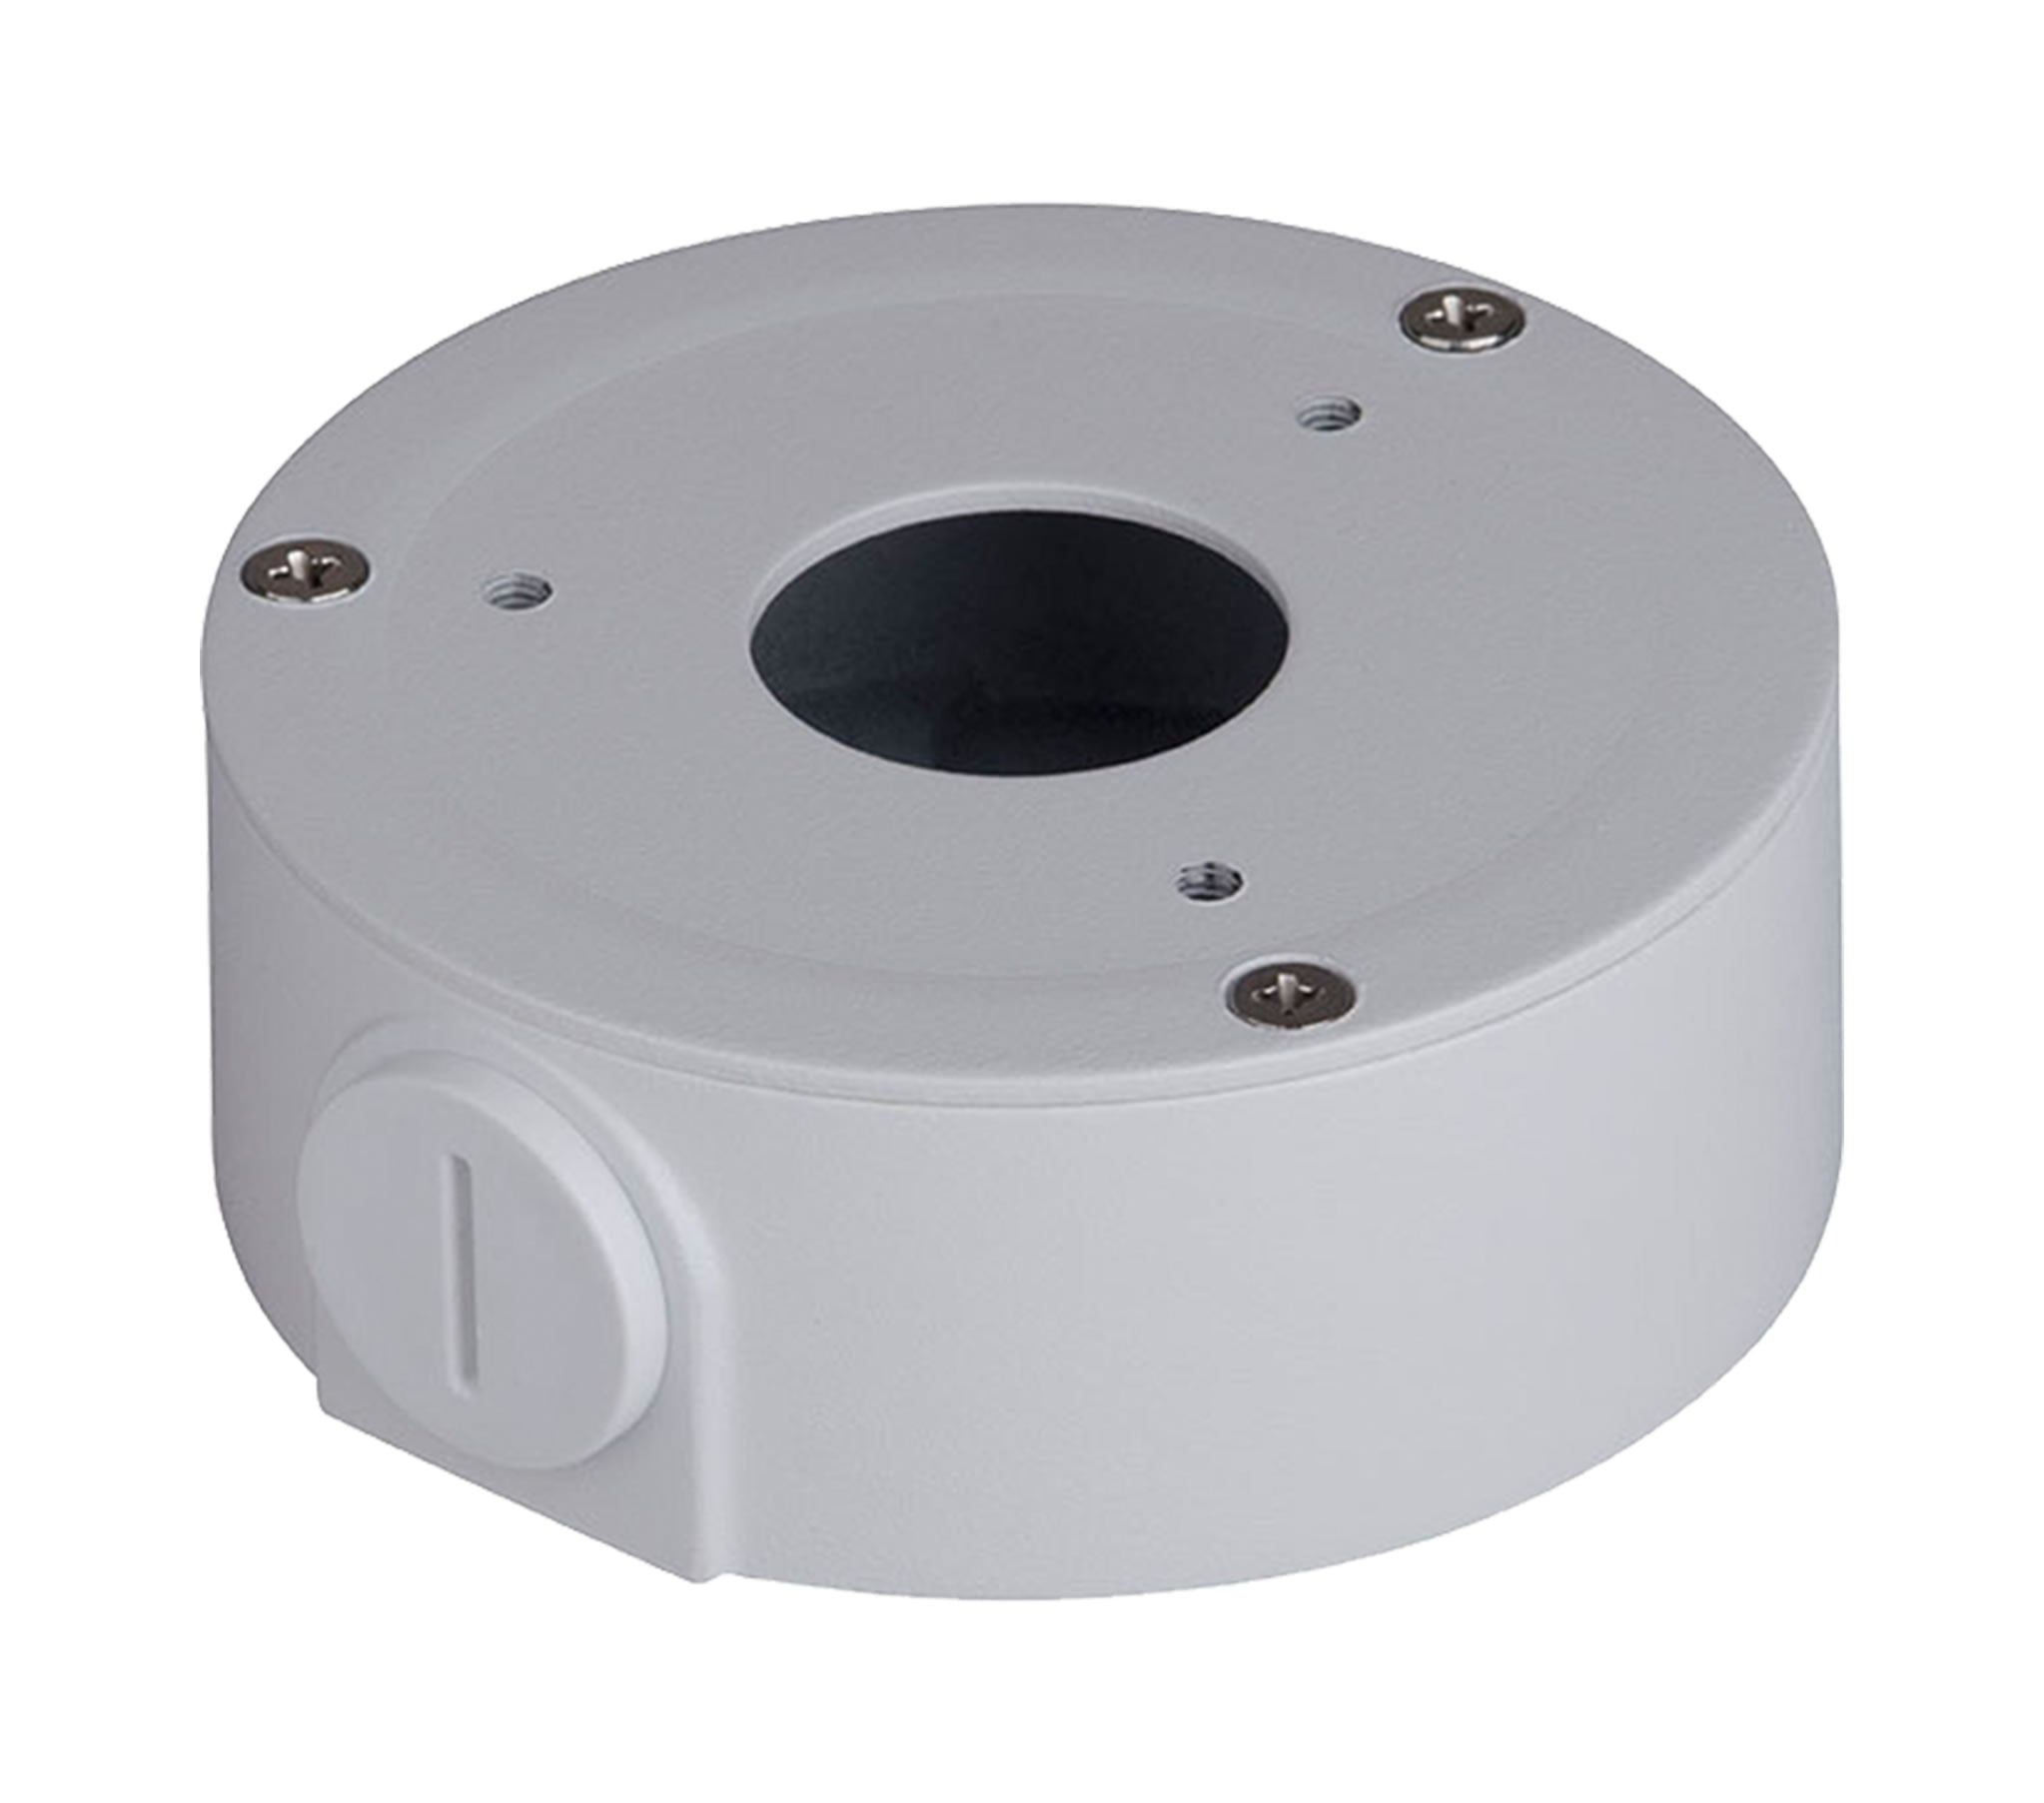 23-4FA134 Water-proof Junction Box for Mini-Bullet Camera